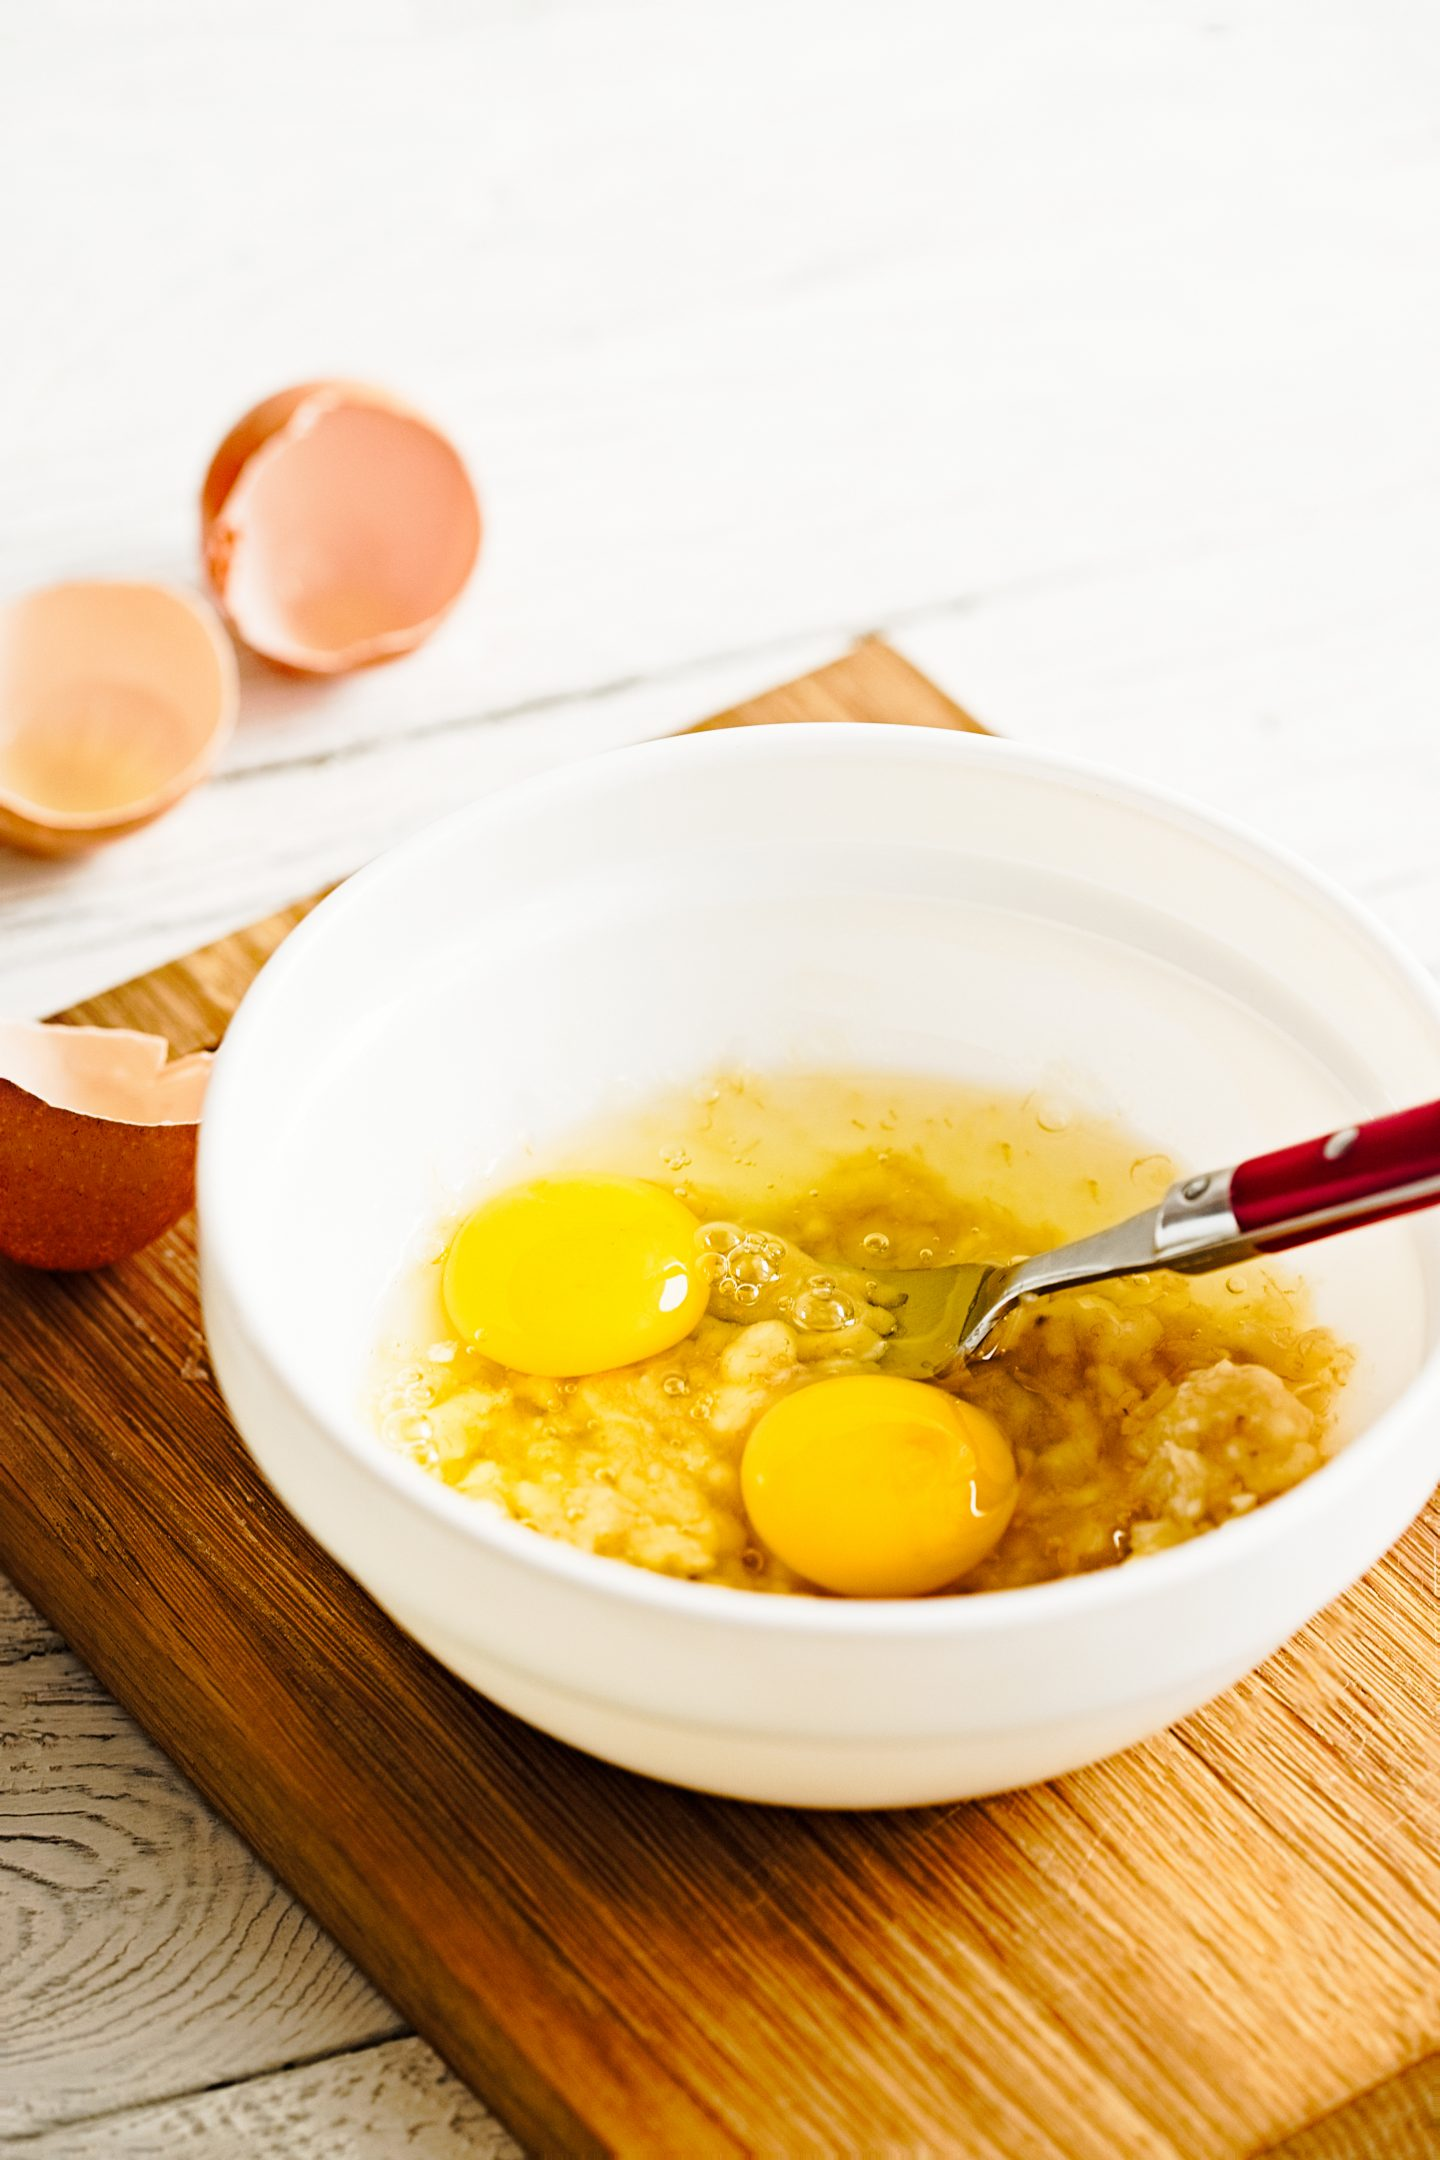 Mixing ingredients for paleo pancakes in white bowl - eggs, mashed banana on white rustic wooden background. Close up